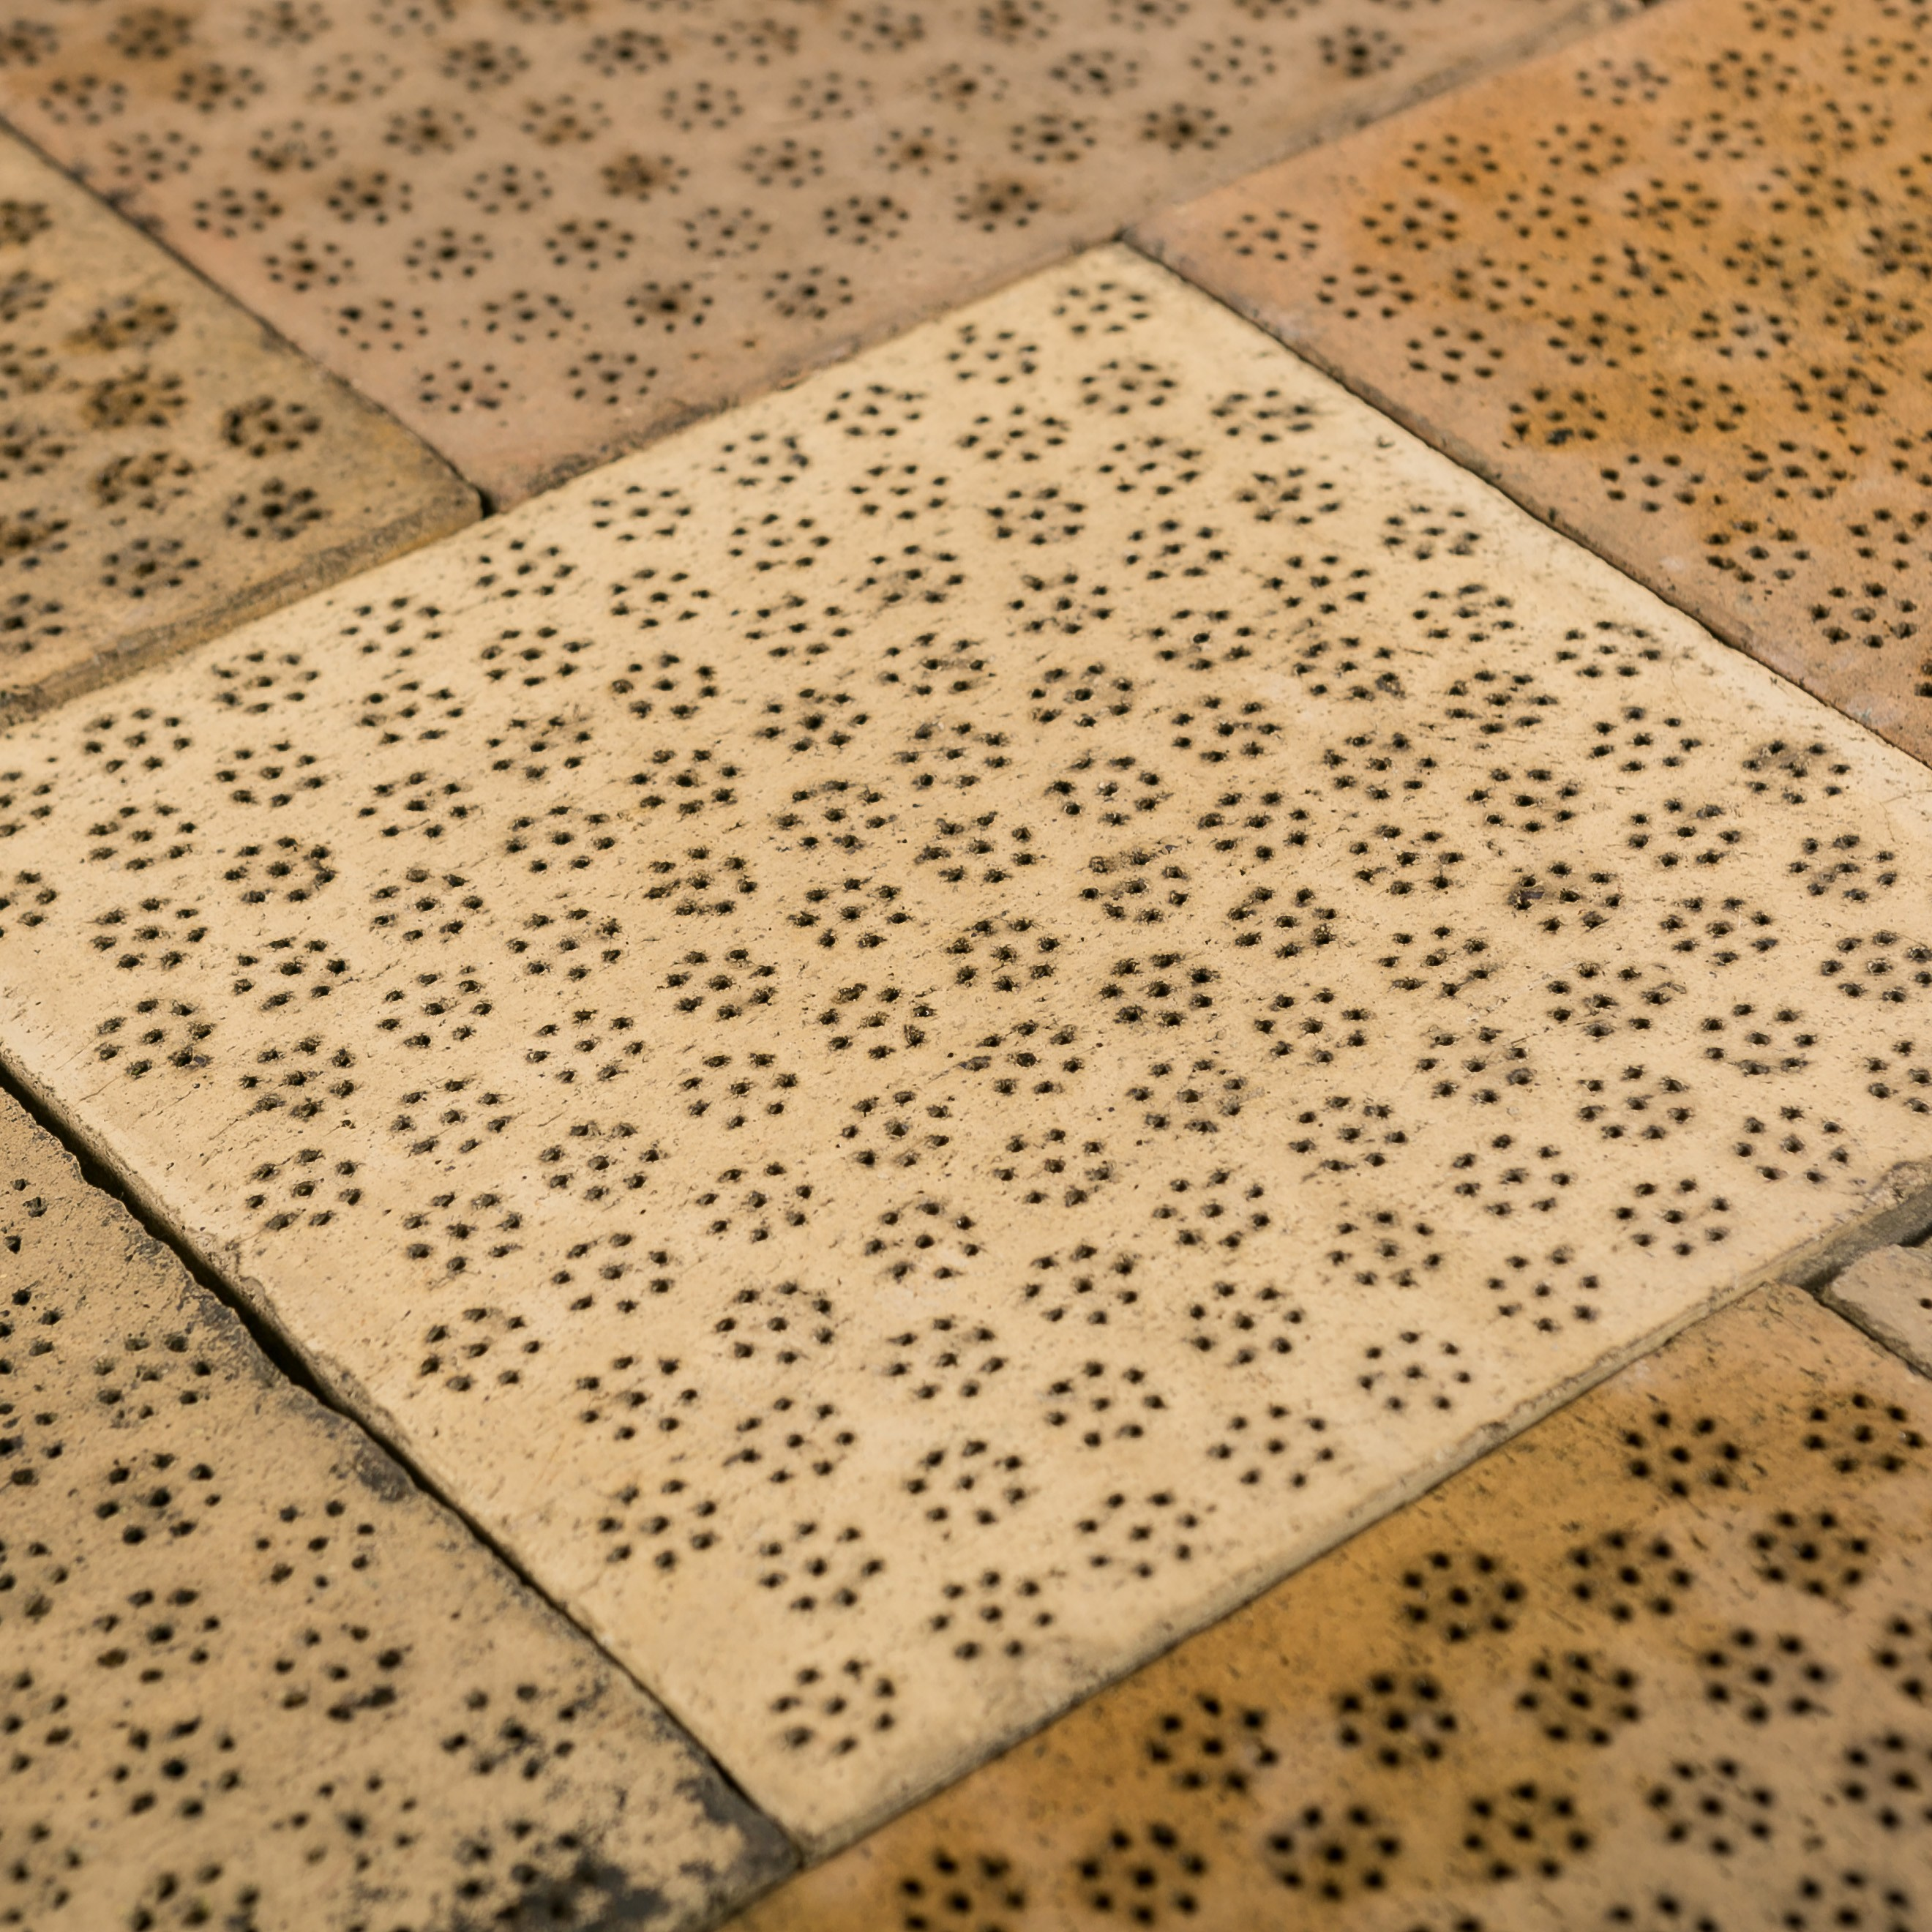 reclaimed 12 inch clay malting tiles floor tiles all